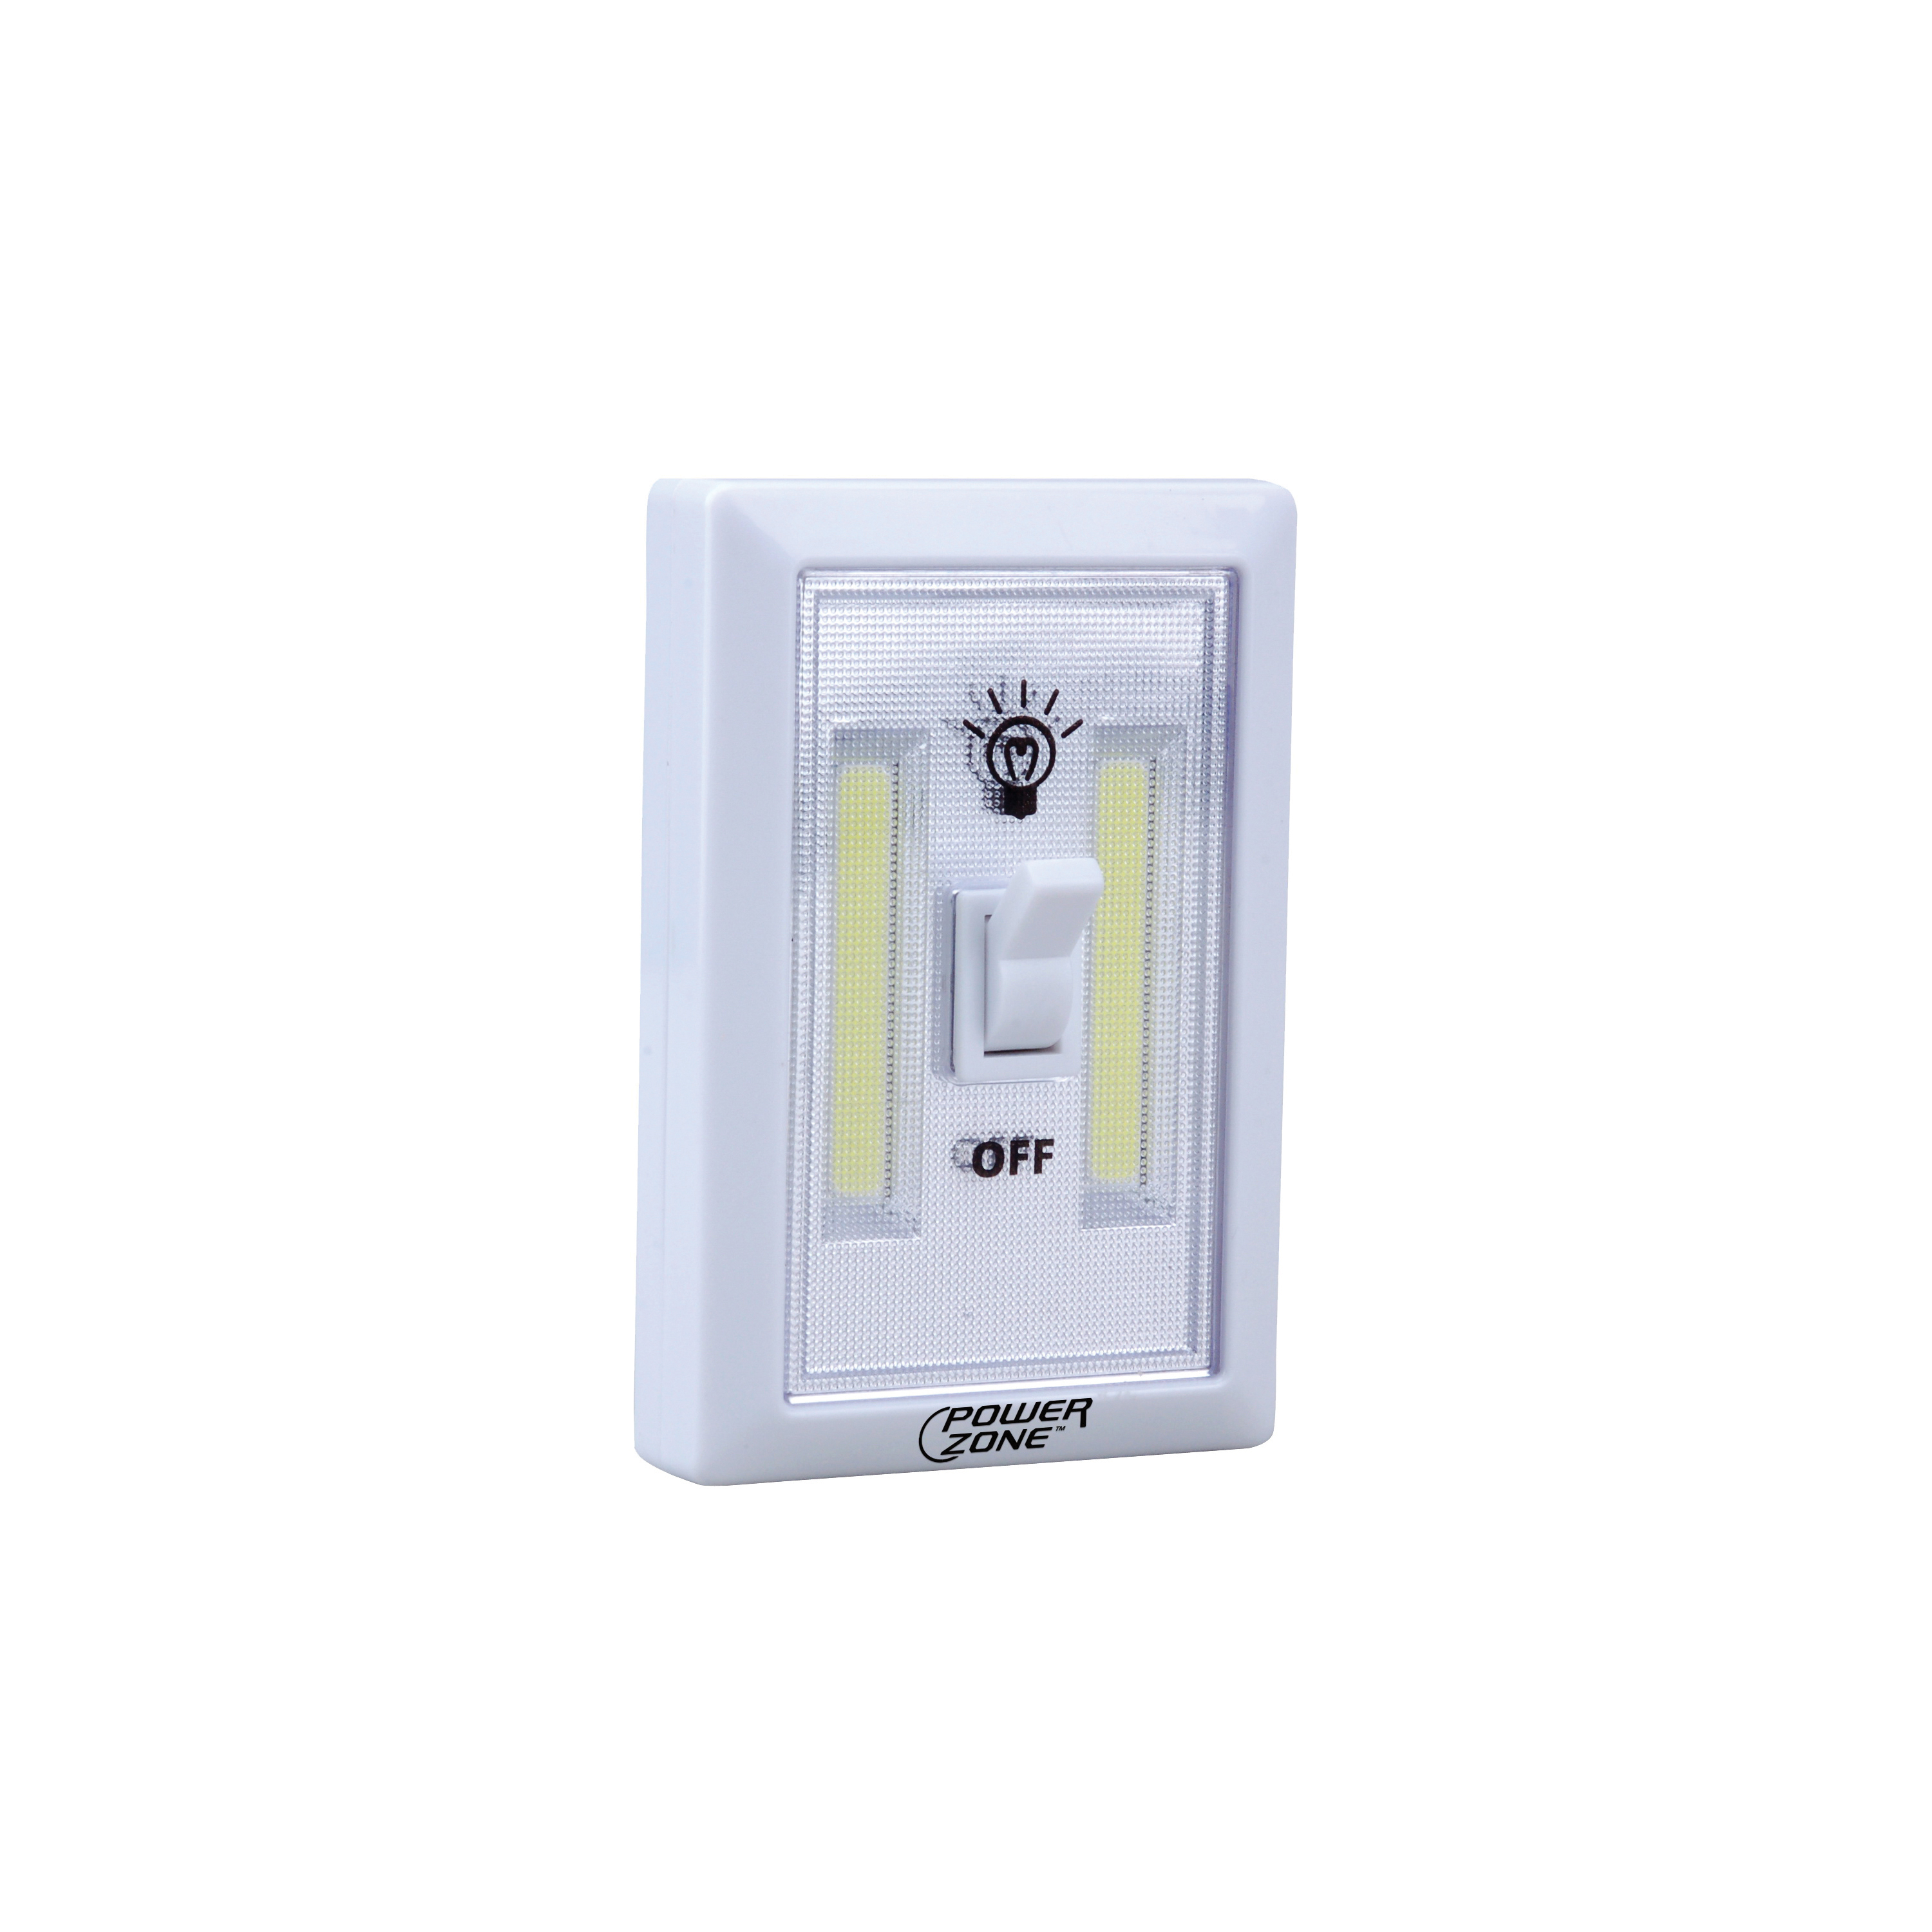 Picture of PowerZone 12532 Cordless Light Switch, LED Lamp, 200 Lumens, Wall Mounting